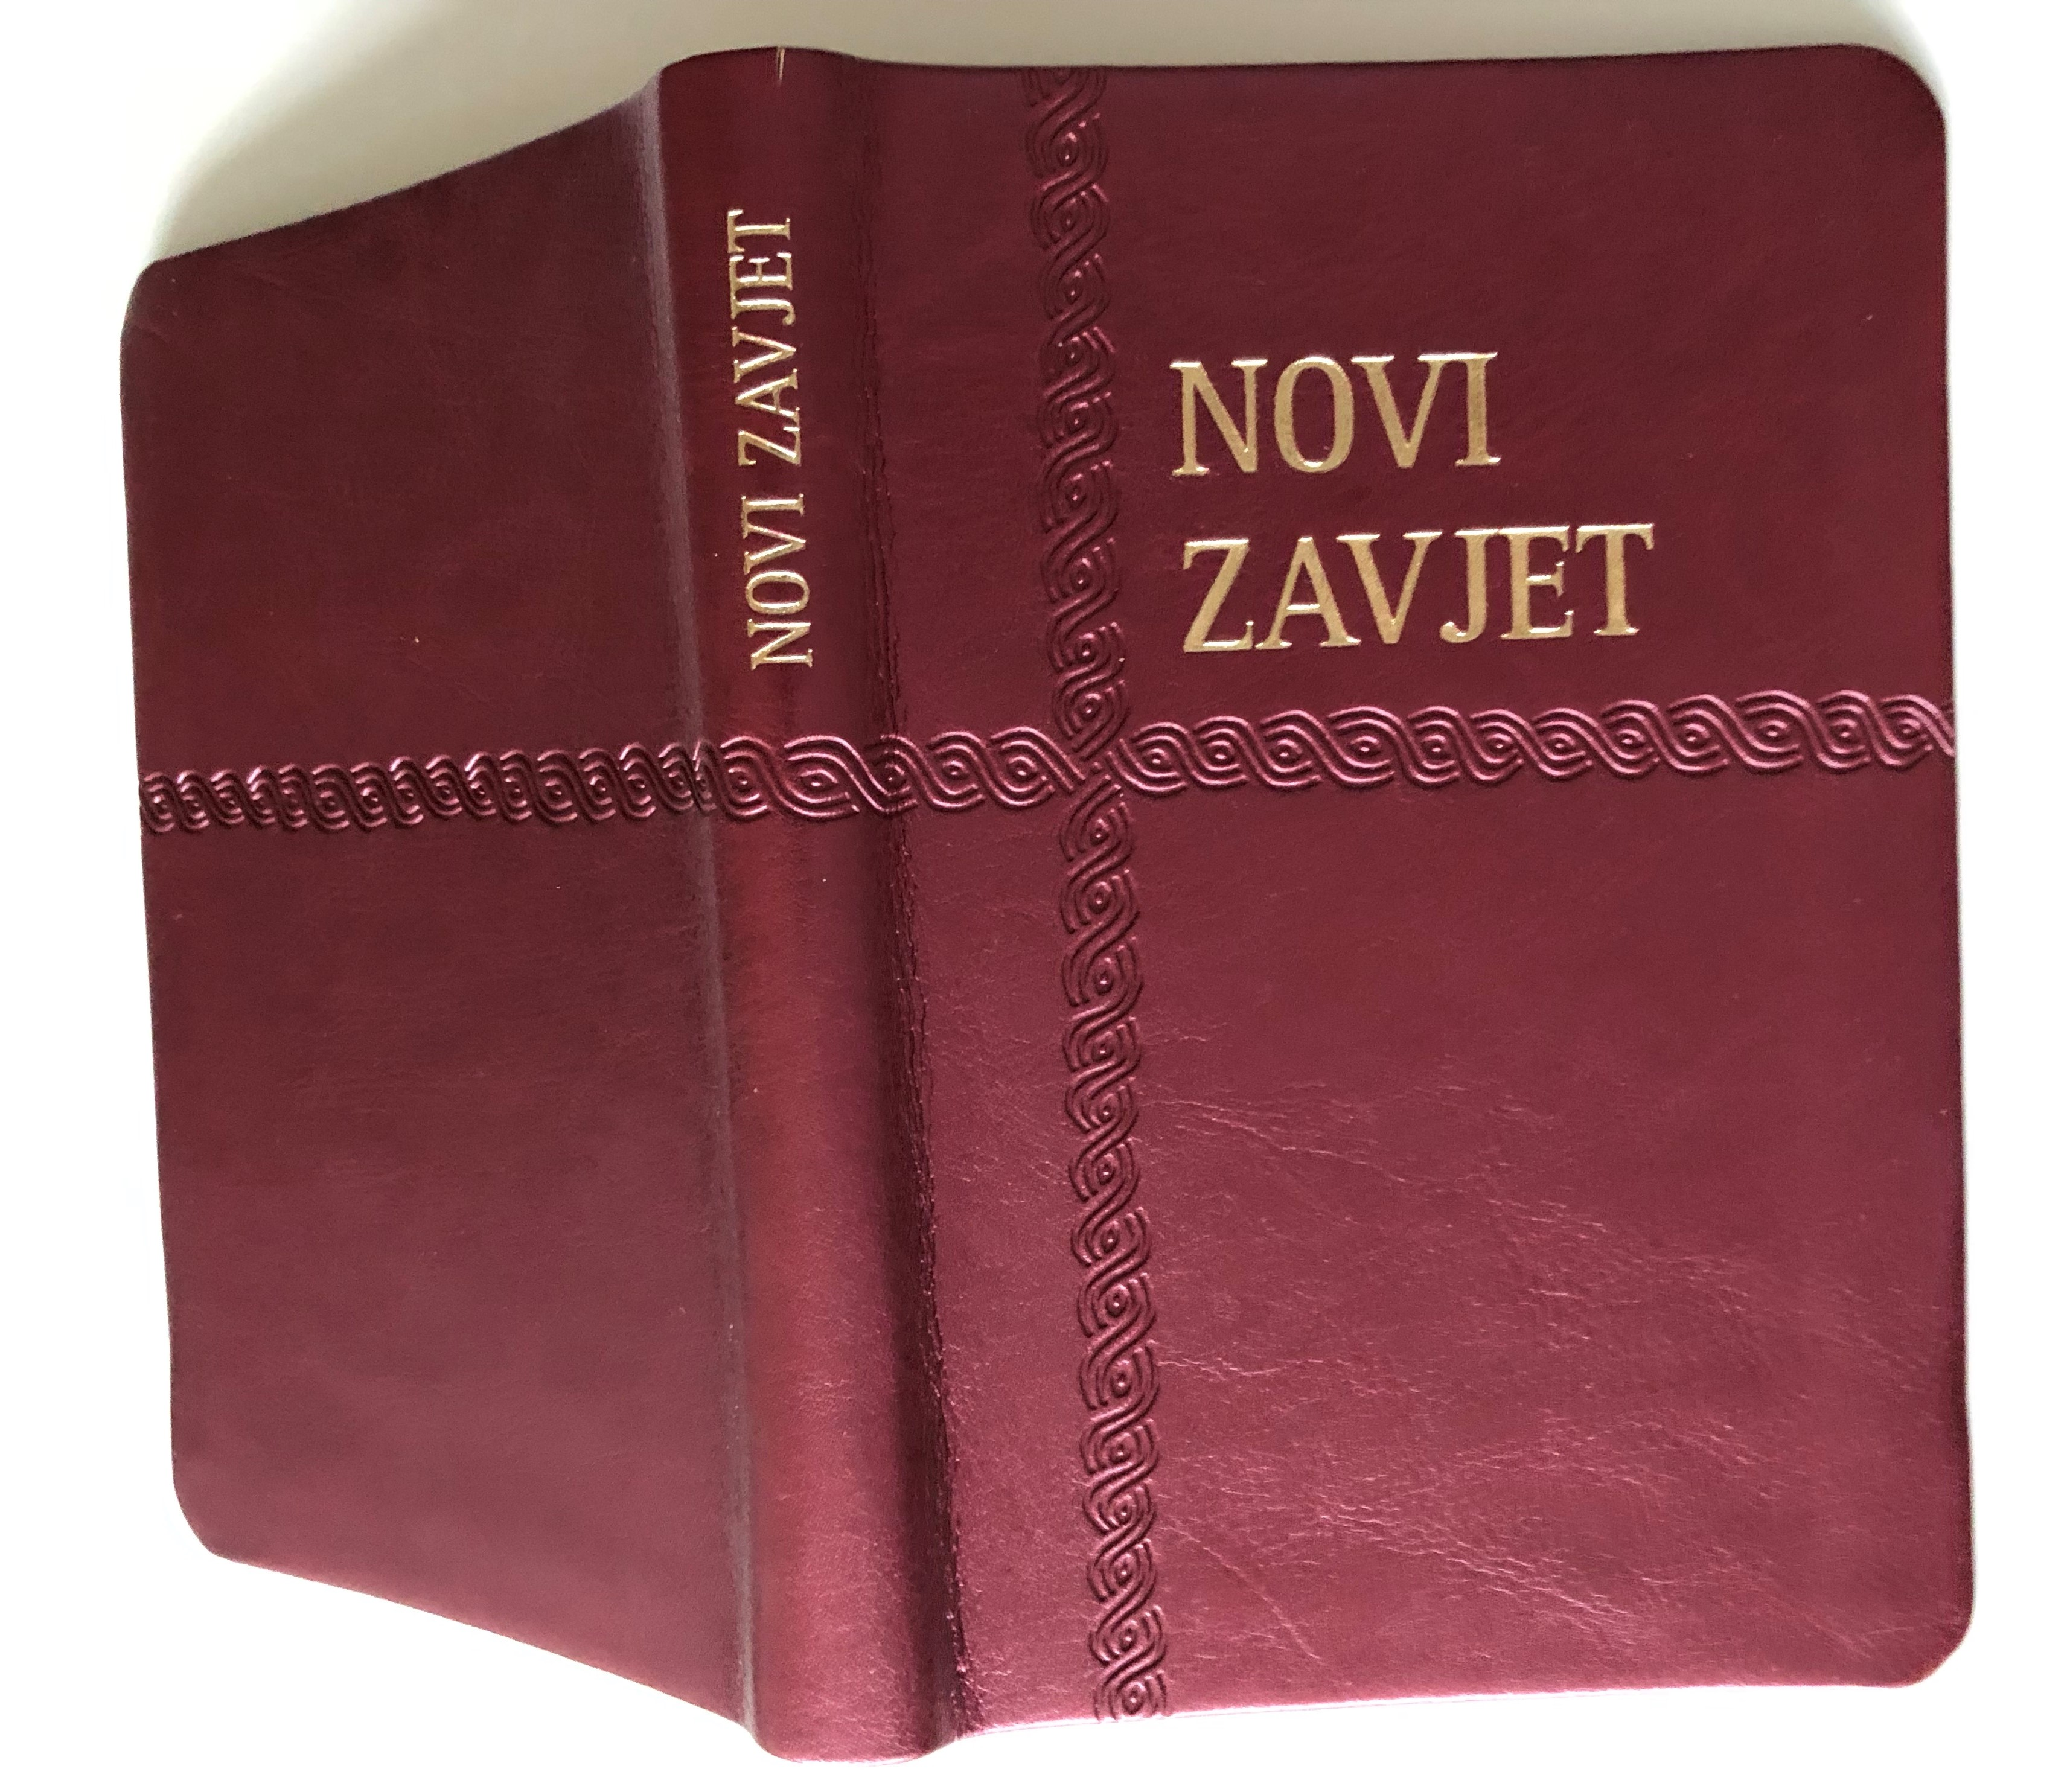 novi-zavjet-new-testament-in-croatian-language-burgundy-leather-bound-golden-edges-13a-.jpg